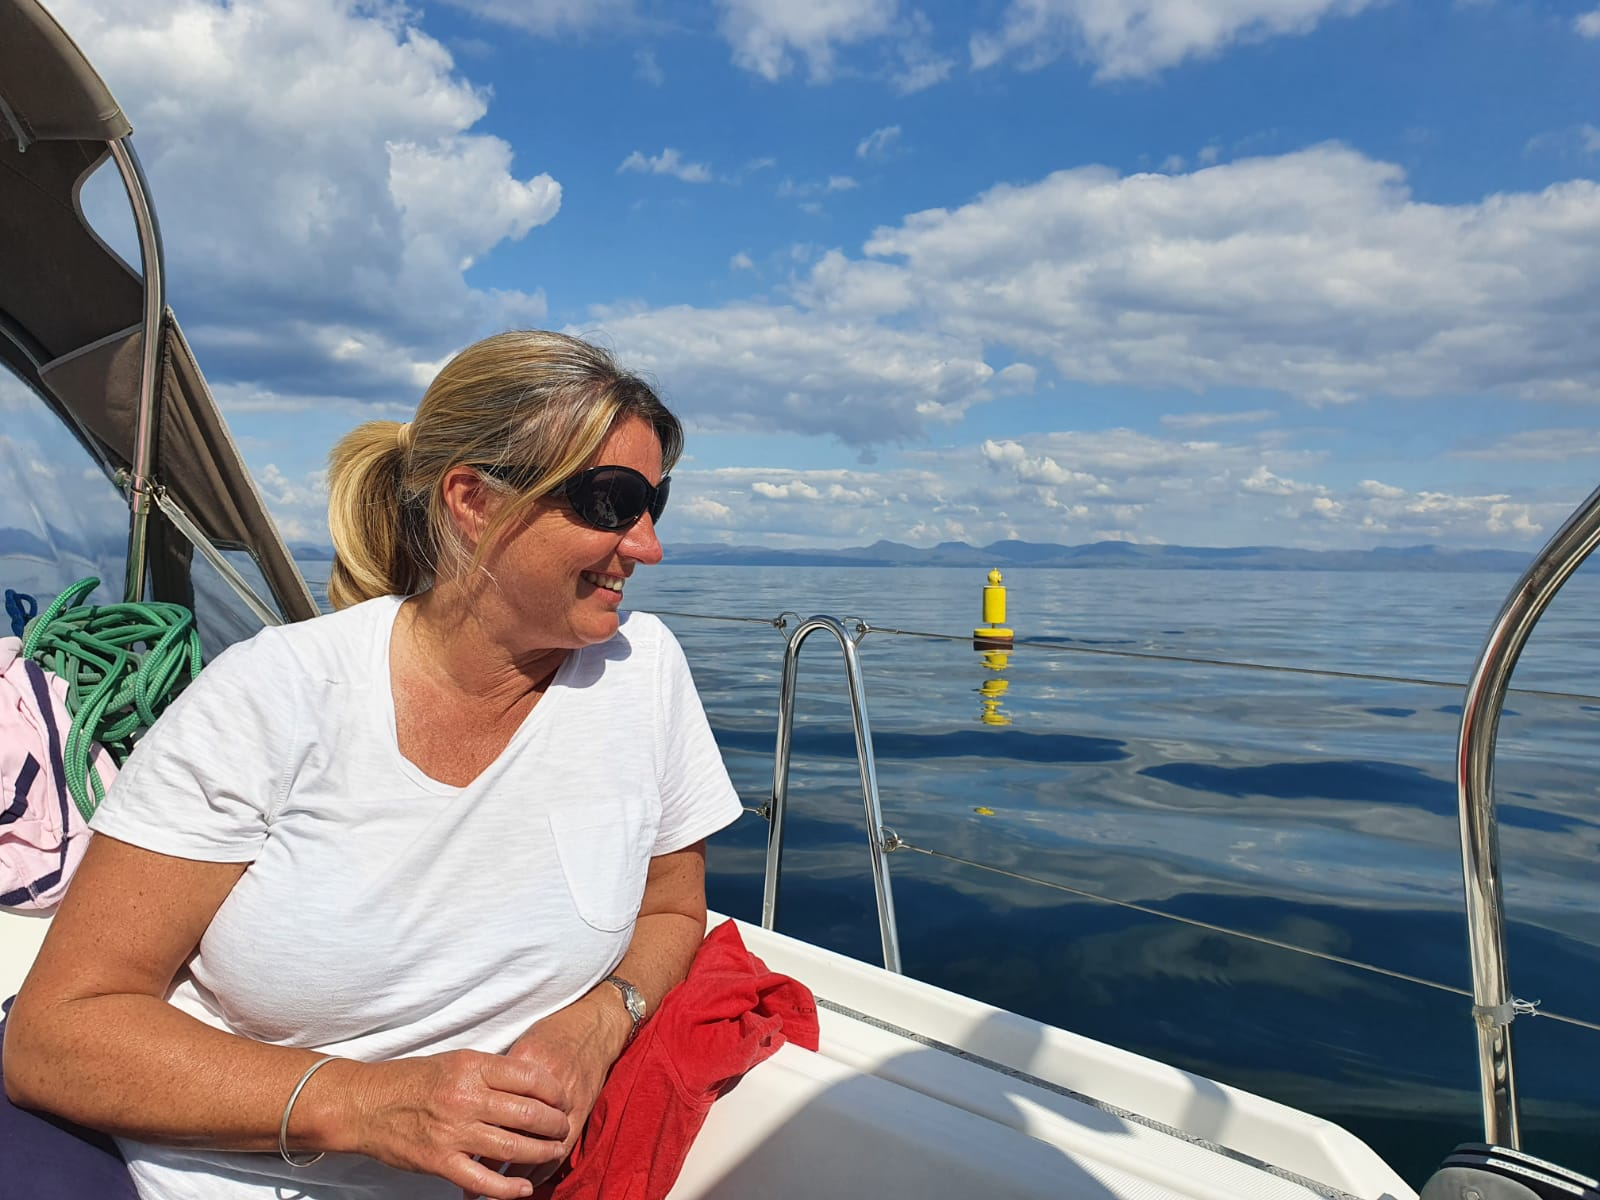 Jane inspecting the Marks